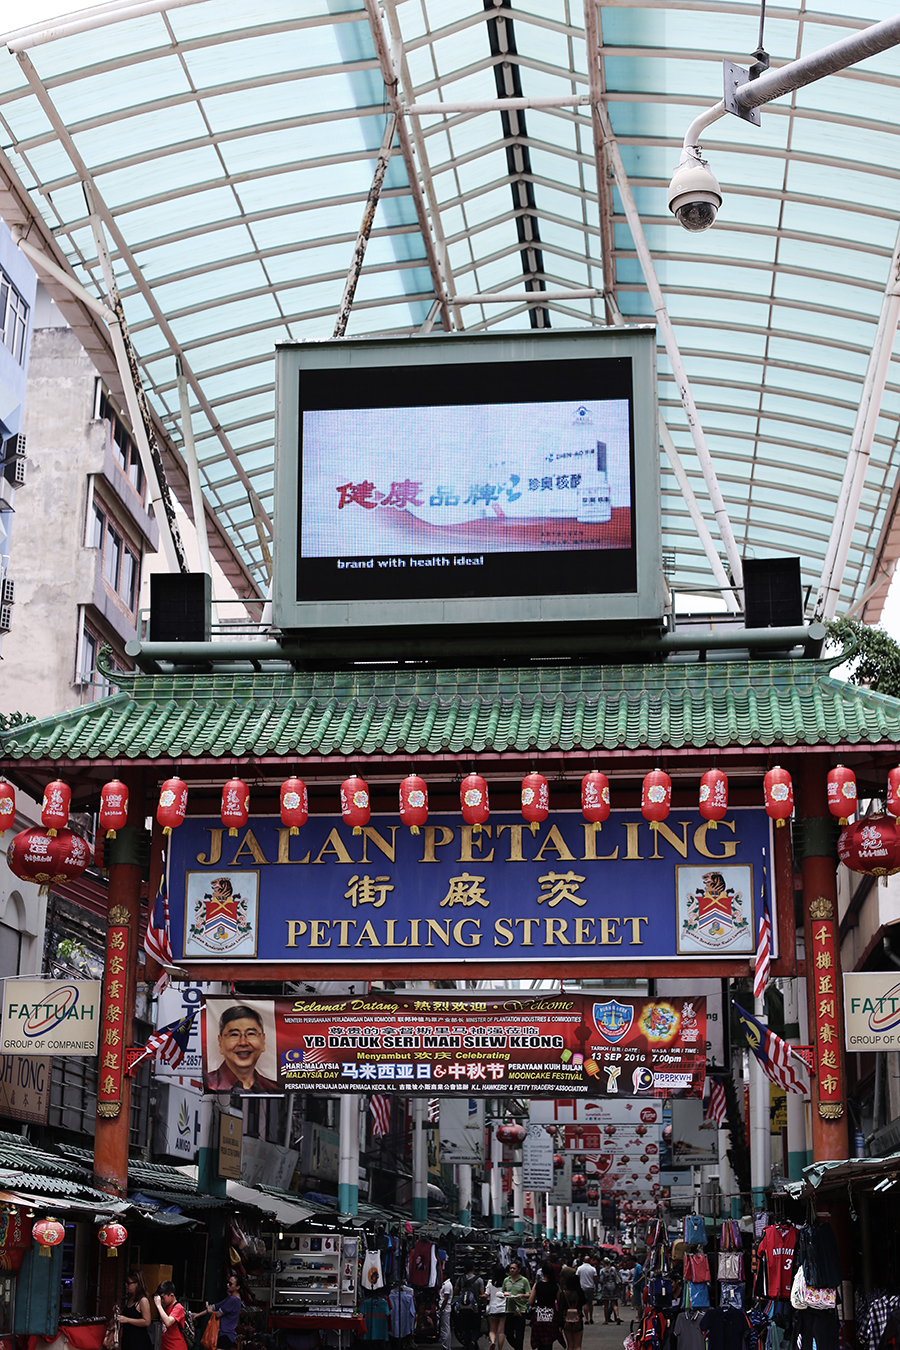 CHOCHA FOOD STORE, MERCHANT'S LANE, and PS150 - the three new watering holes bringing an old-school but young-blood revival to Jalan Petaling in Kuala Lumpur's Chinatown.